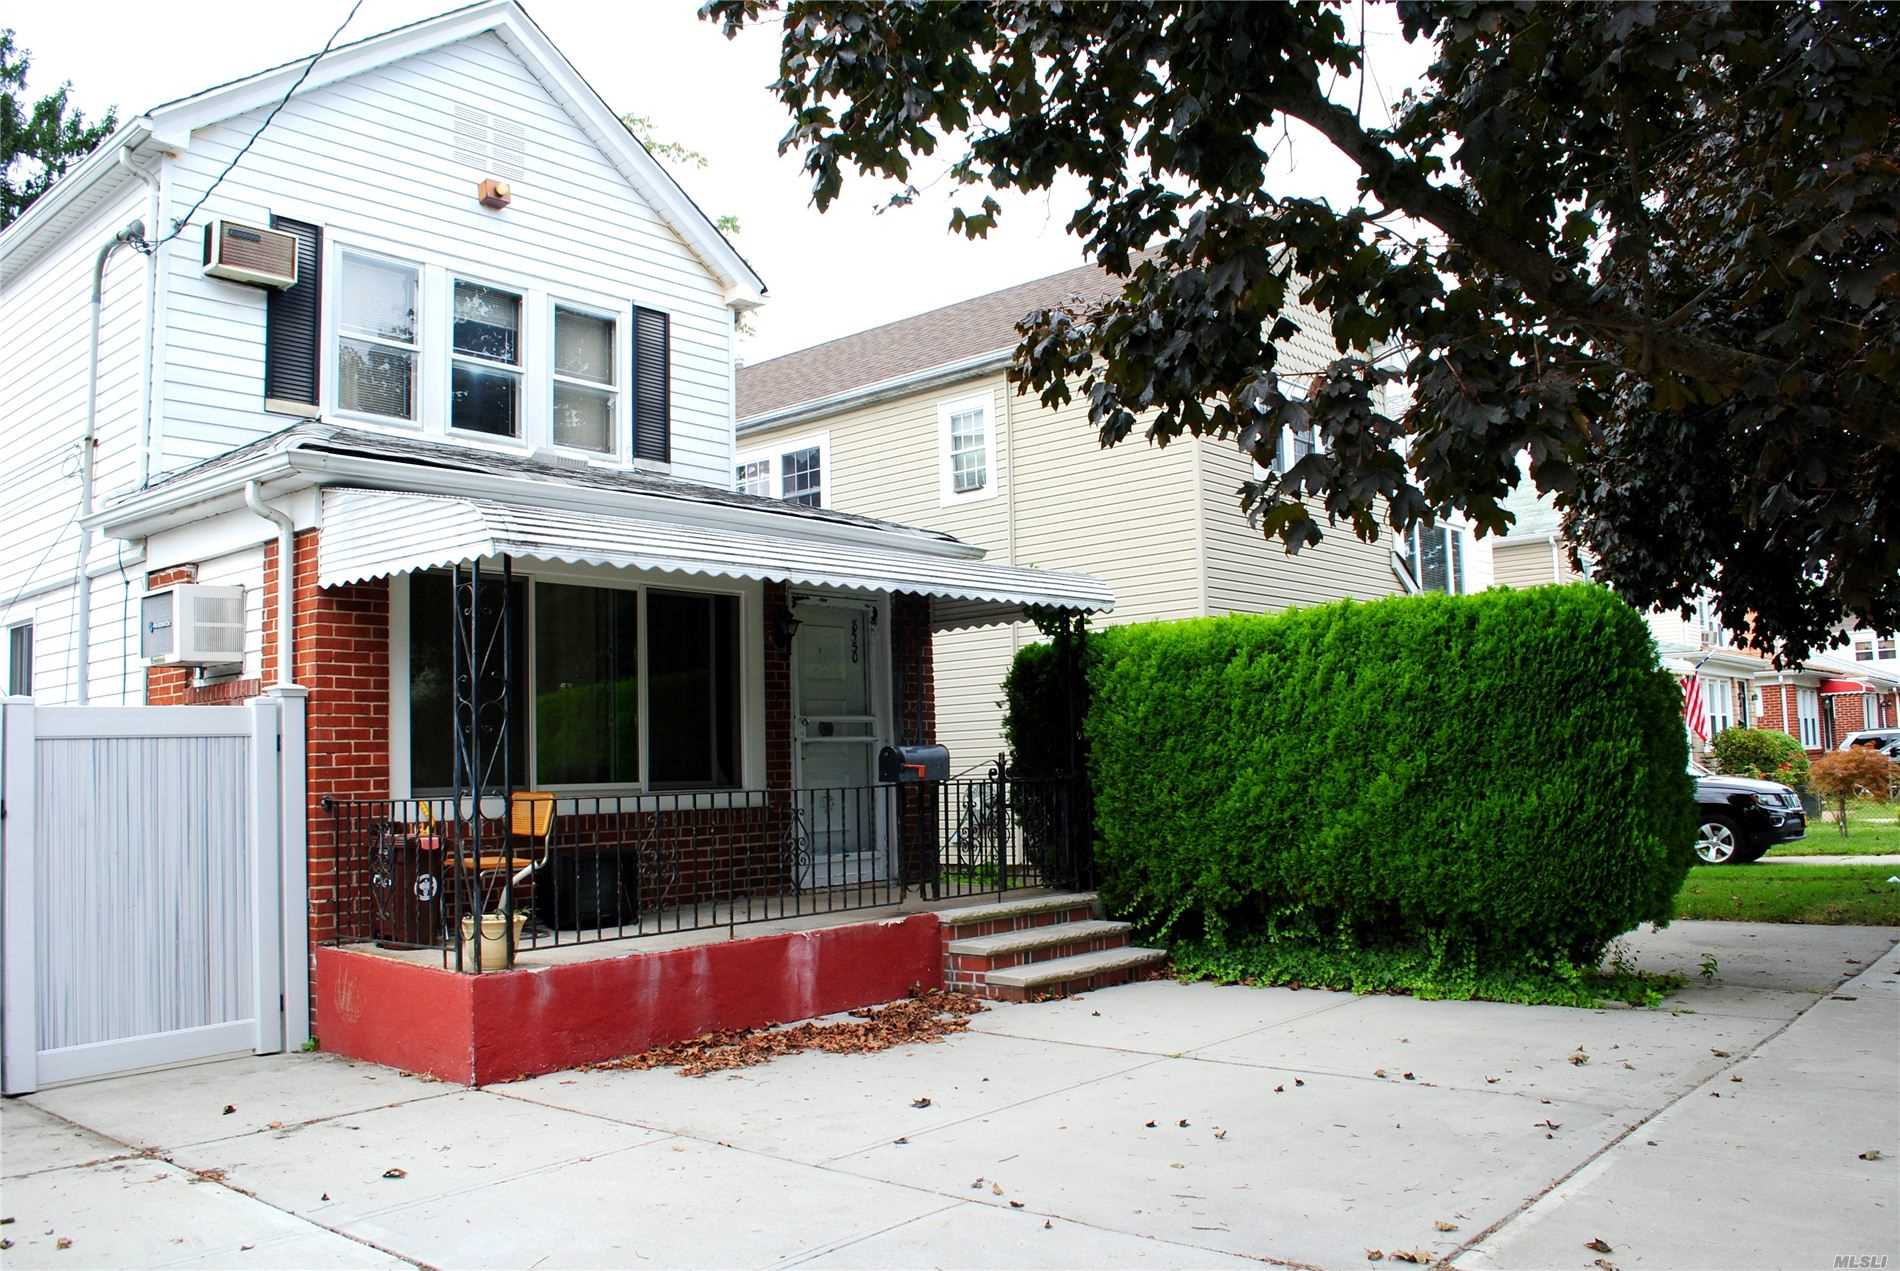 Great mid block house with tons of potential in sd 26.The house is located minutes away from major highways, walk to local and express buses, shops and restaurants & 5 min walk away from PS 191!First floor has new windows, an open layout with the living-room leading to the kitchen and an exit to the private large backyard.The 2nd floor has 3 brs and a full bath. Updated 150amp electric&detached garage.Selling as is. Opportunity to renovate according to your taste and to make this space your own.